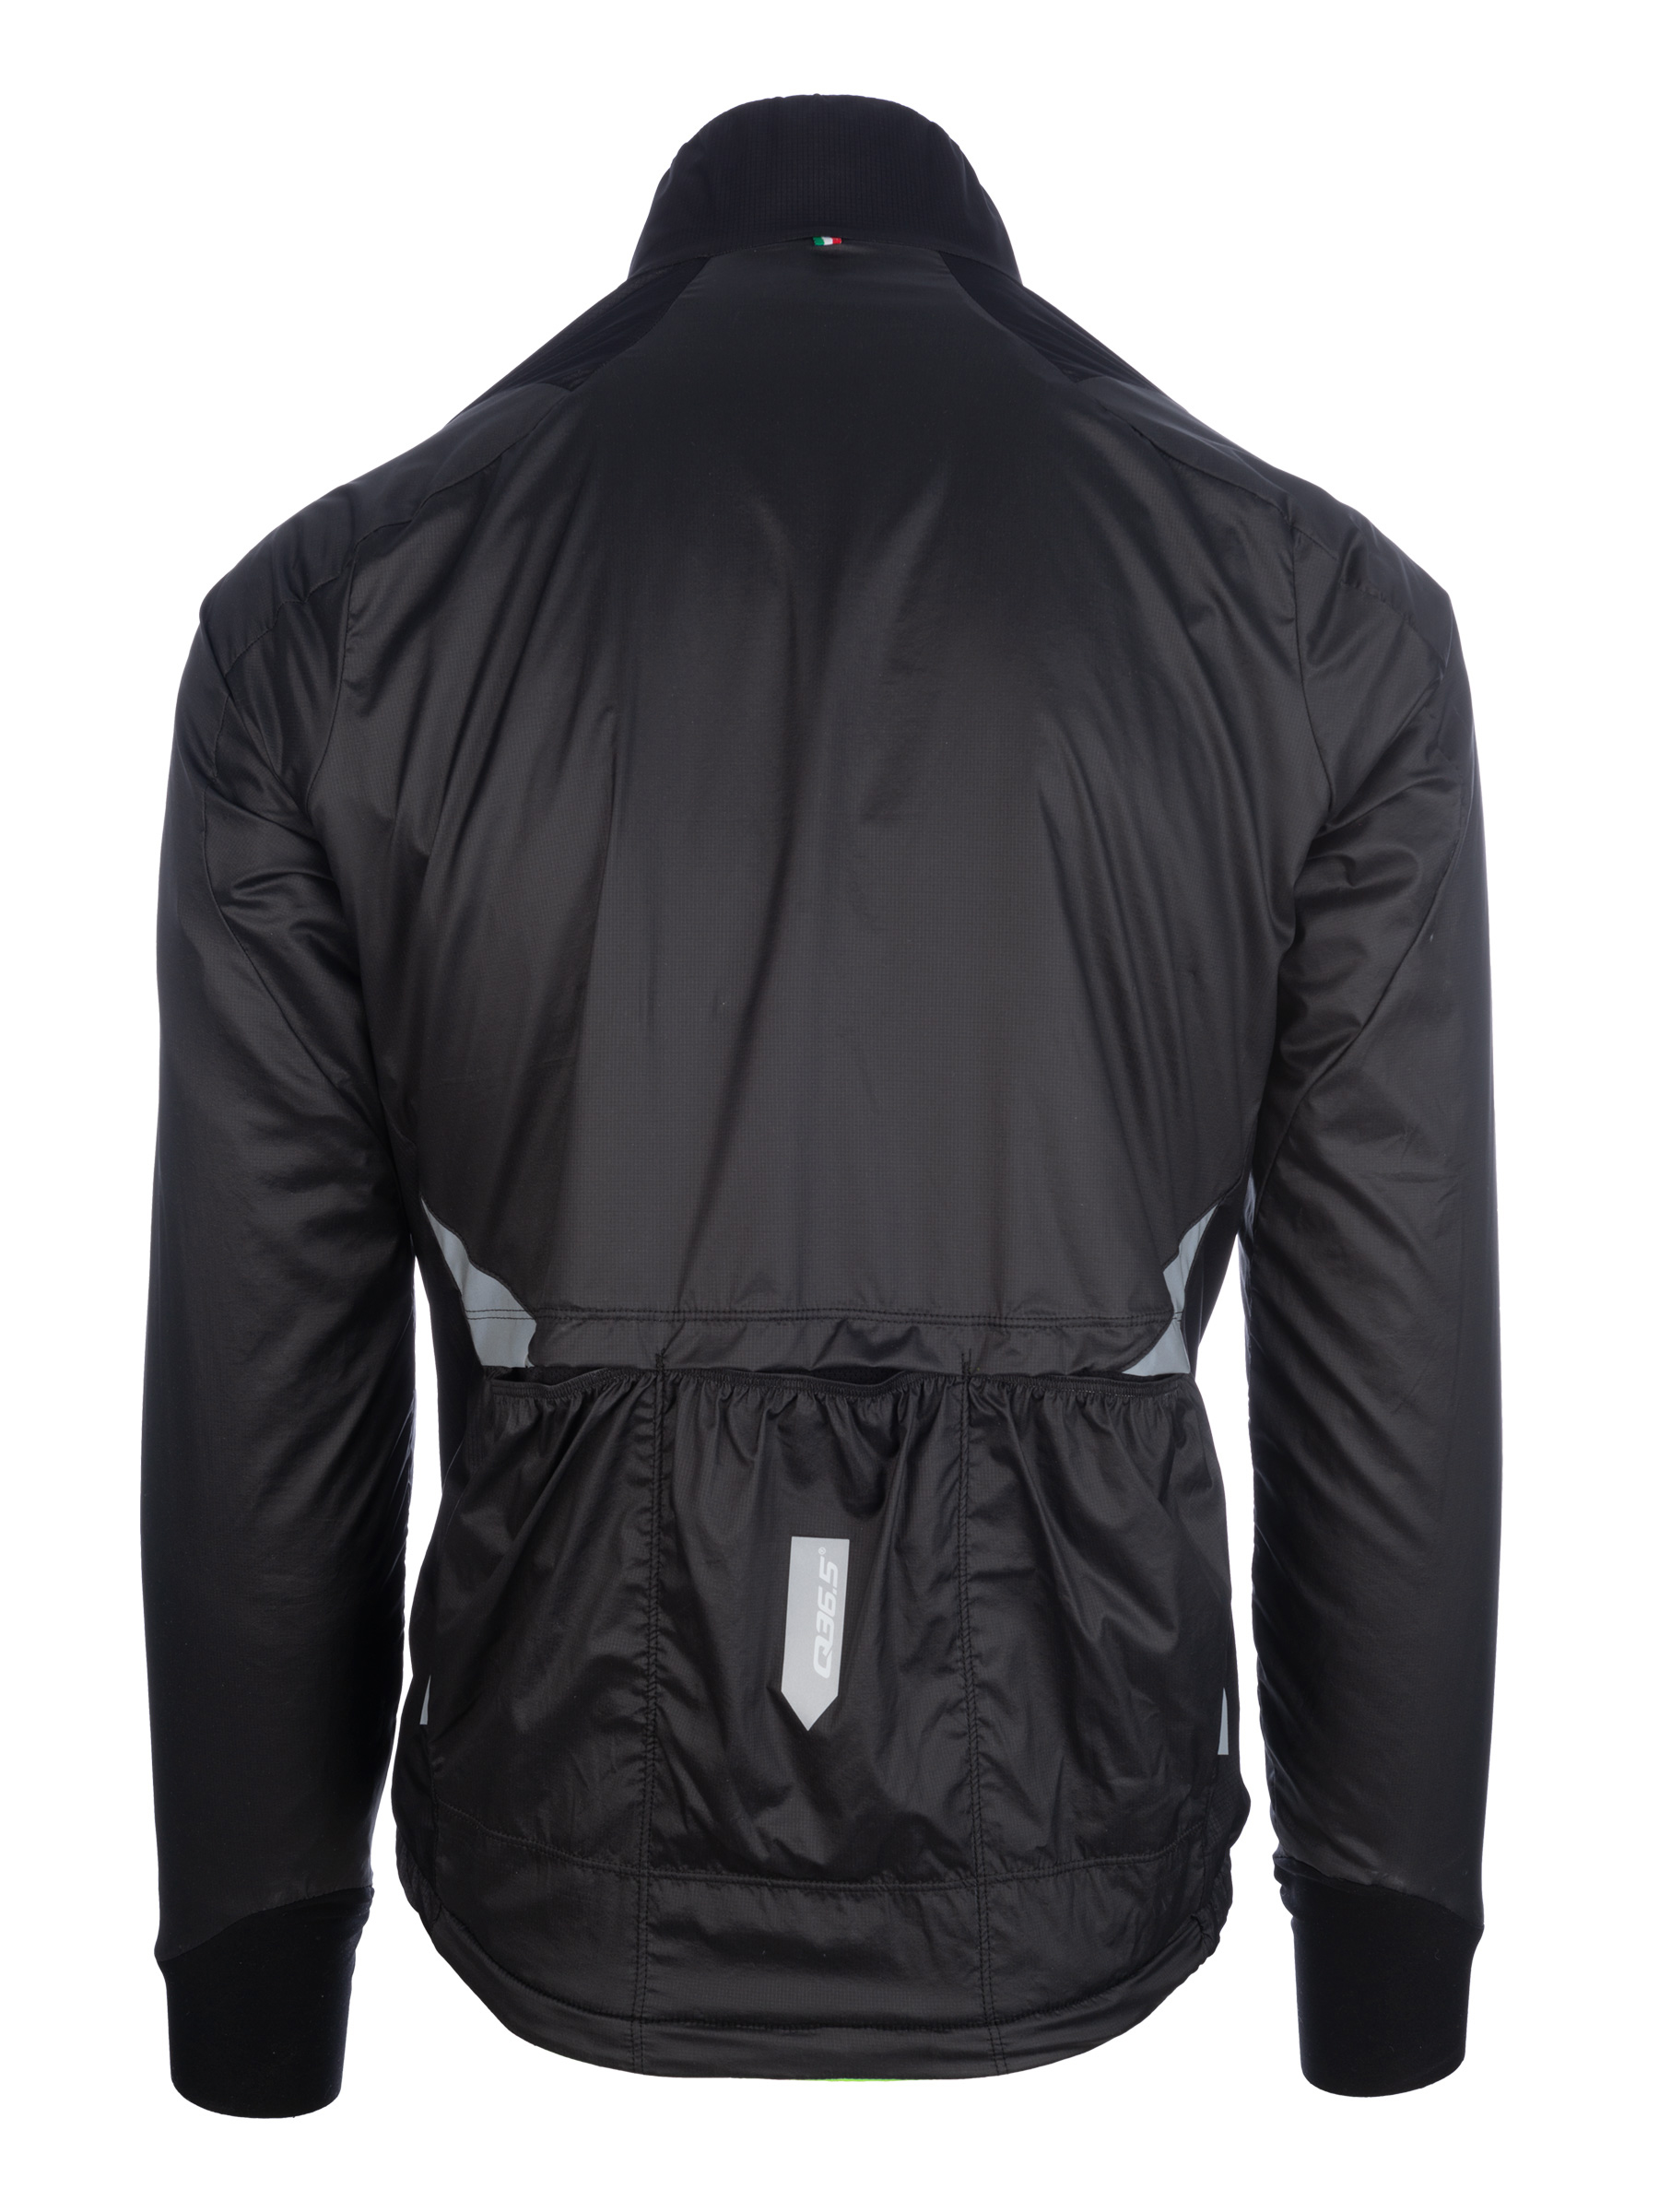 Adventure winter jacket black